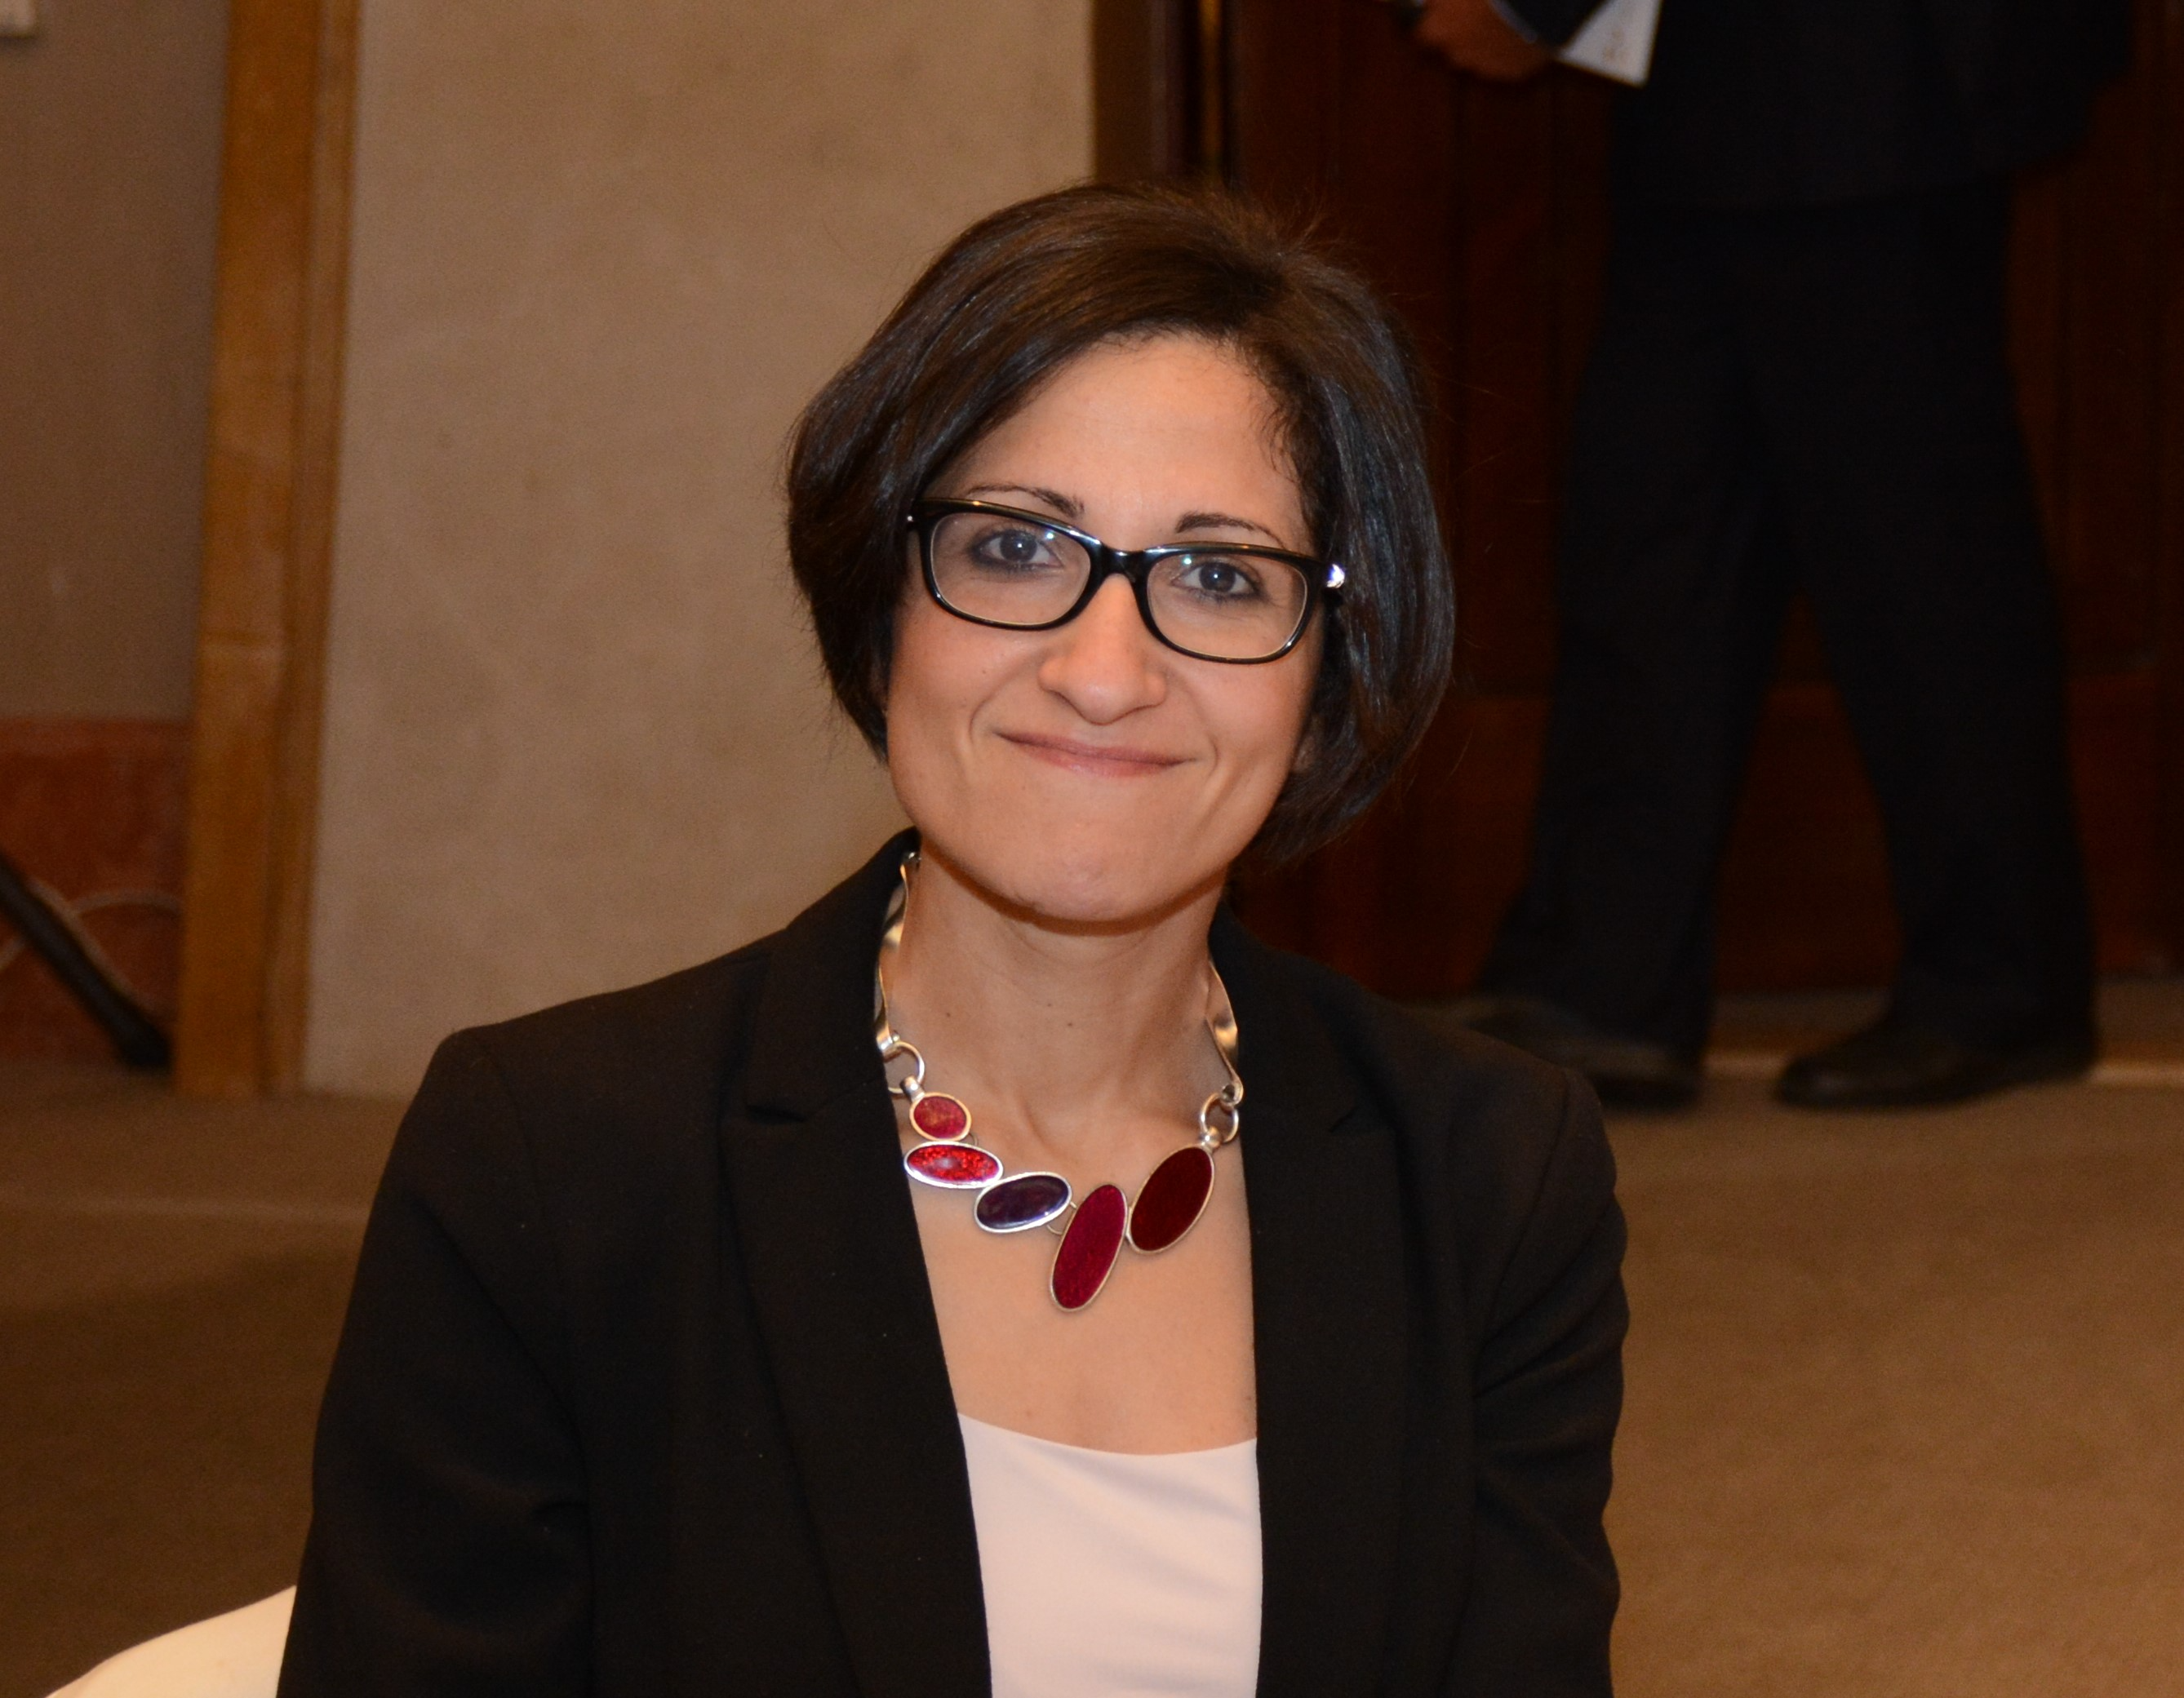 Sally Yacoub - Gender, Diversity, Equity & Inclusion Consultant